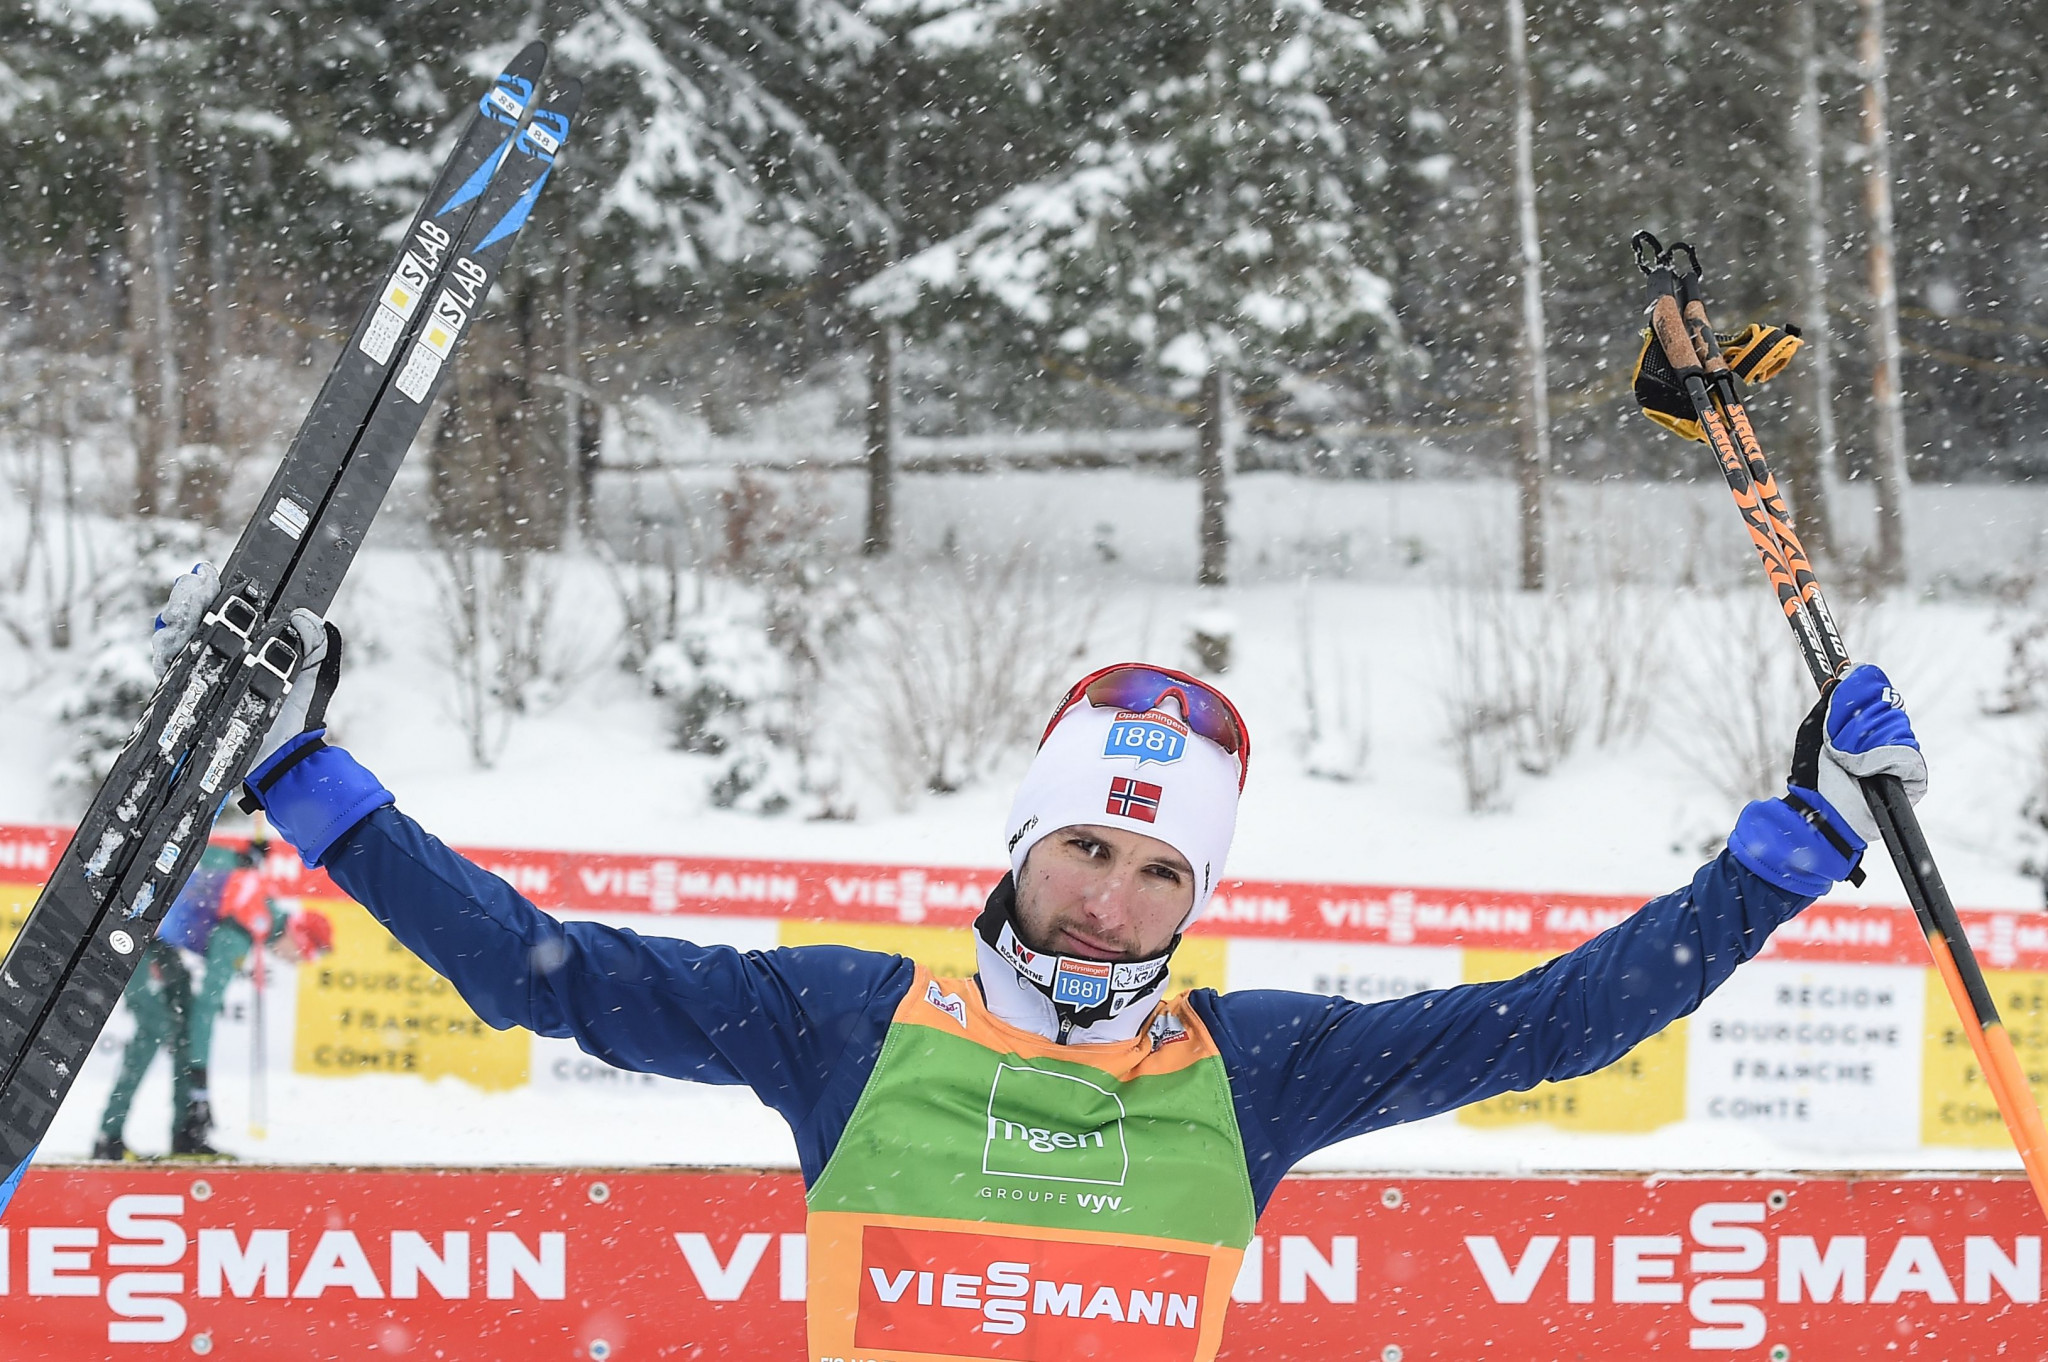 Schmid shows nerve in the blizzard to win fourth FIS Nordic Combined World Cup